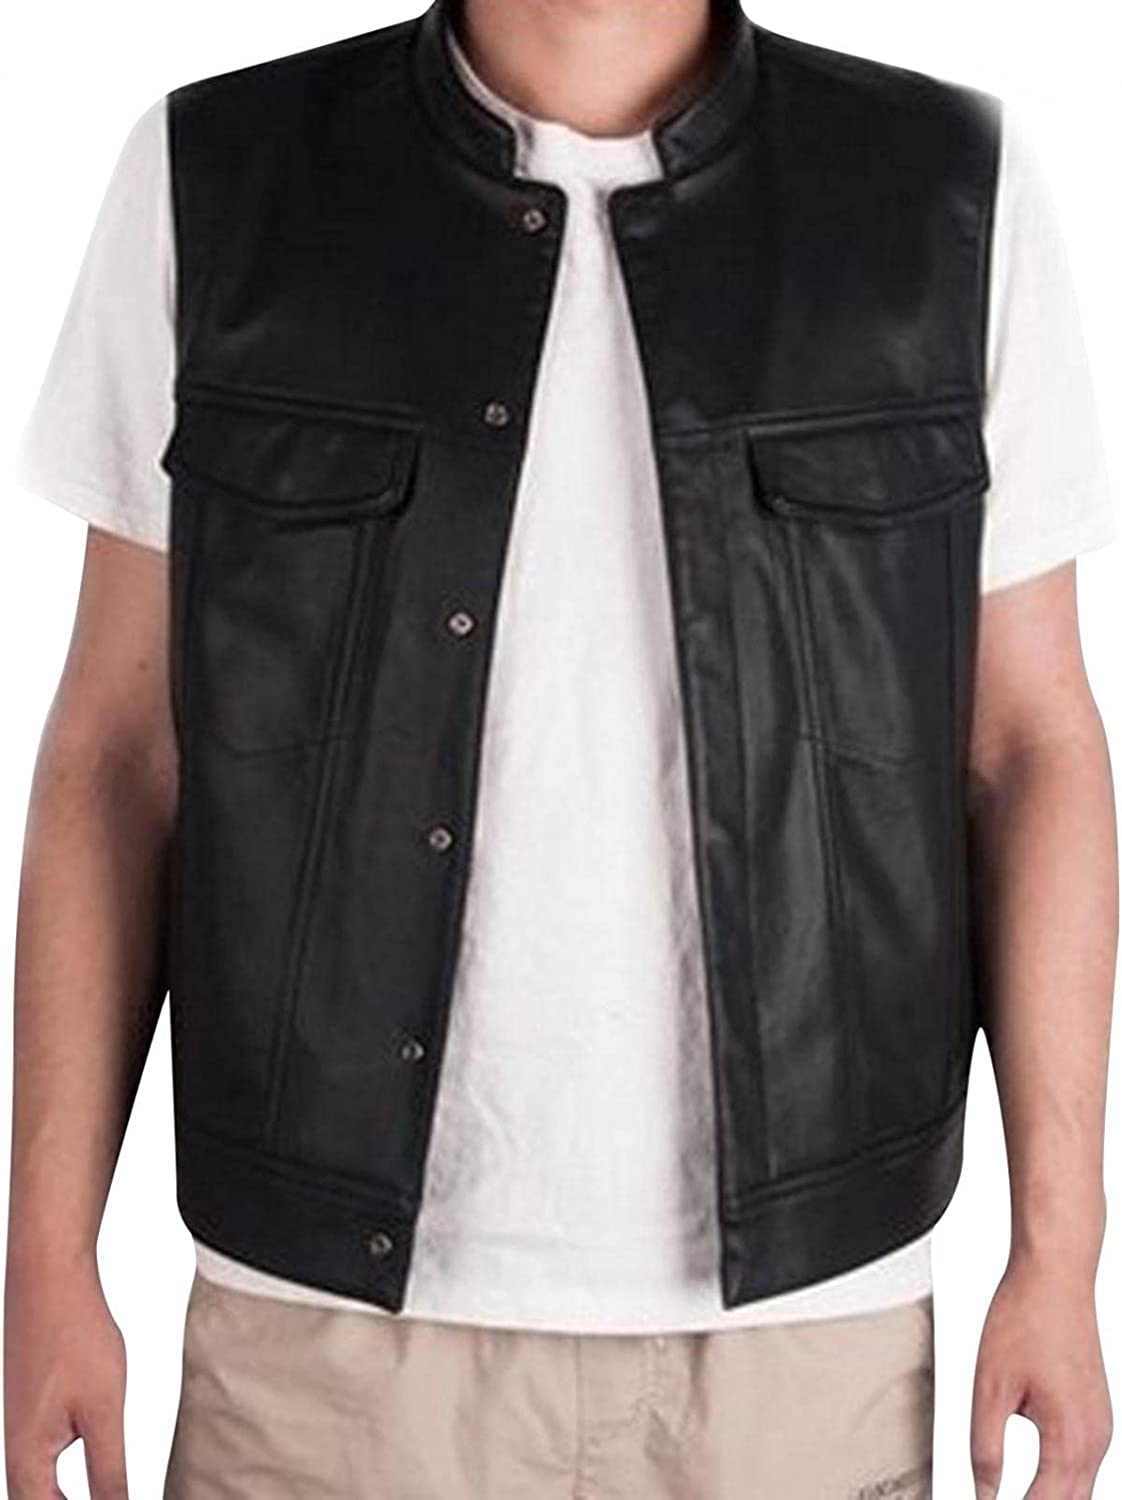 HGOOGY Men's Solid Faux Leather Vest, Button Down Sleeveless Jacket with Multi -Pockets, Fashion Slim Fit Outwear